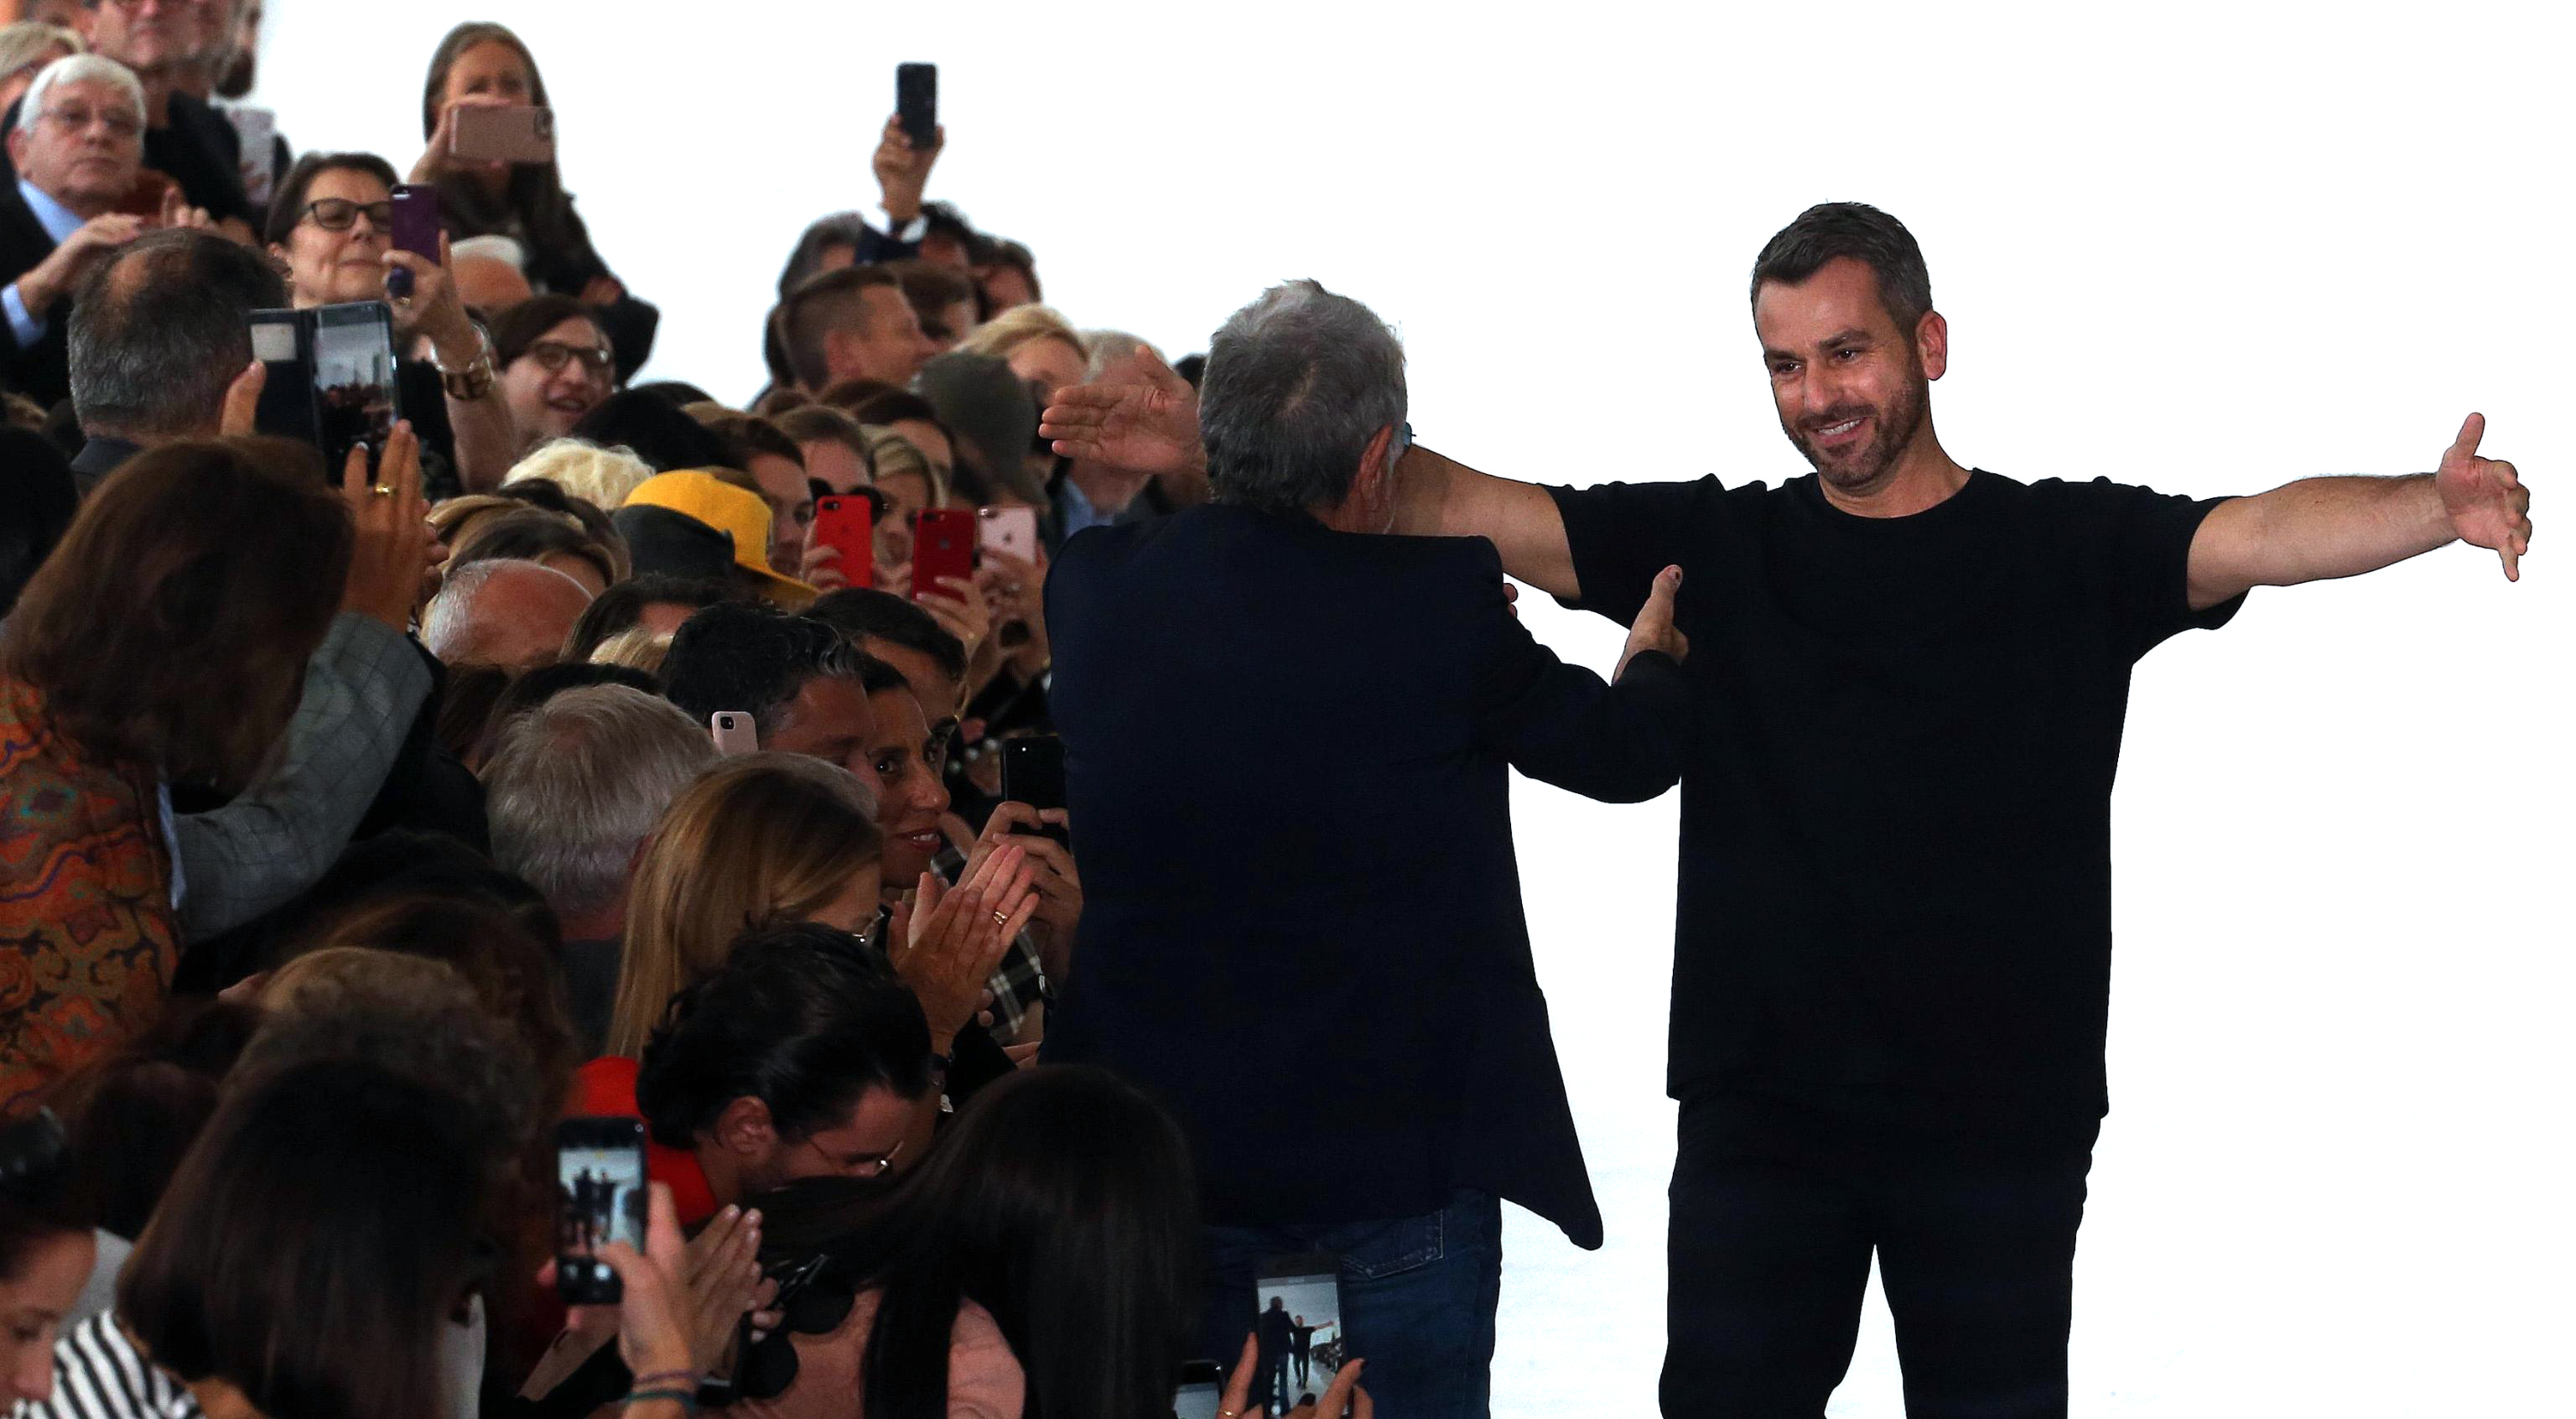 Paul SurridgeRoberto Cavalli - Runway - Milan Fashion Week, Italy - 22 Sep 2017British designer Paul Surridge (R) greets members of the audience after the presentation of his collection for Roberto Cavalli during the Milan Fashion Week, in Milan, Italy, 22 September 2017. The Spring-Summer 2017/2018 collections are presented at the Milano Moda Donna from 20 to 25 September.